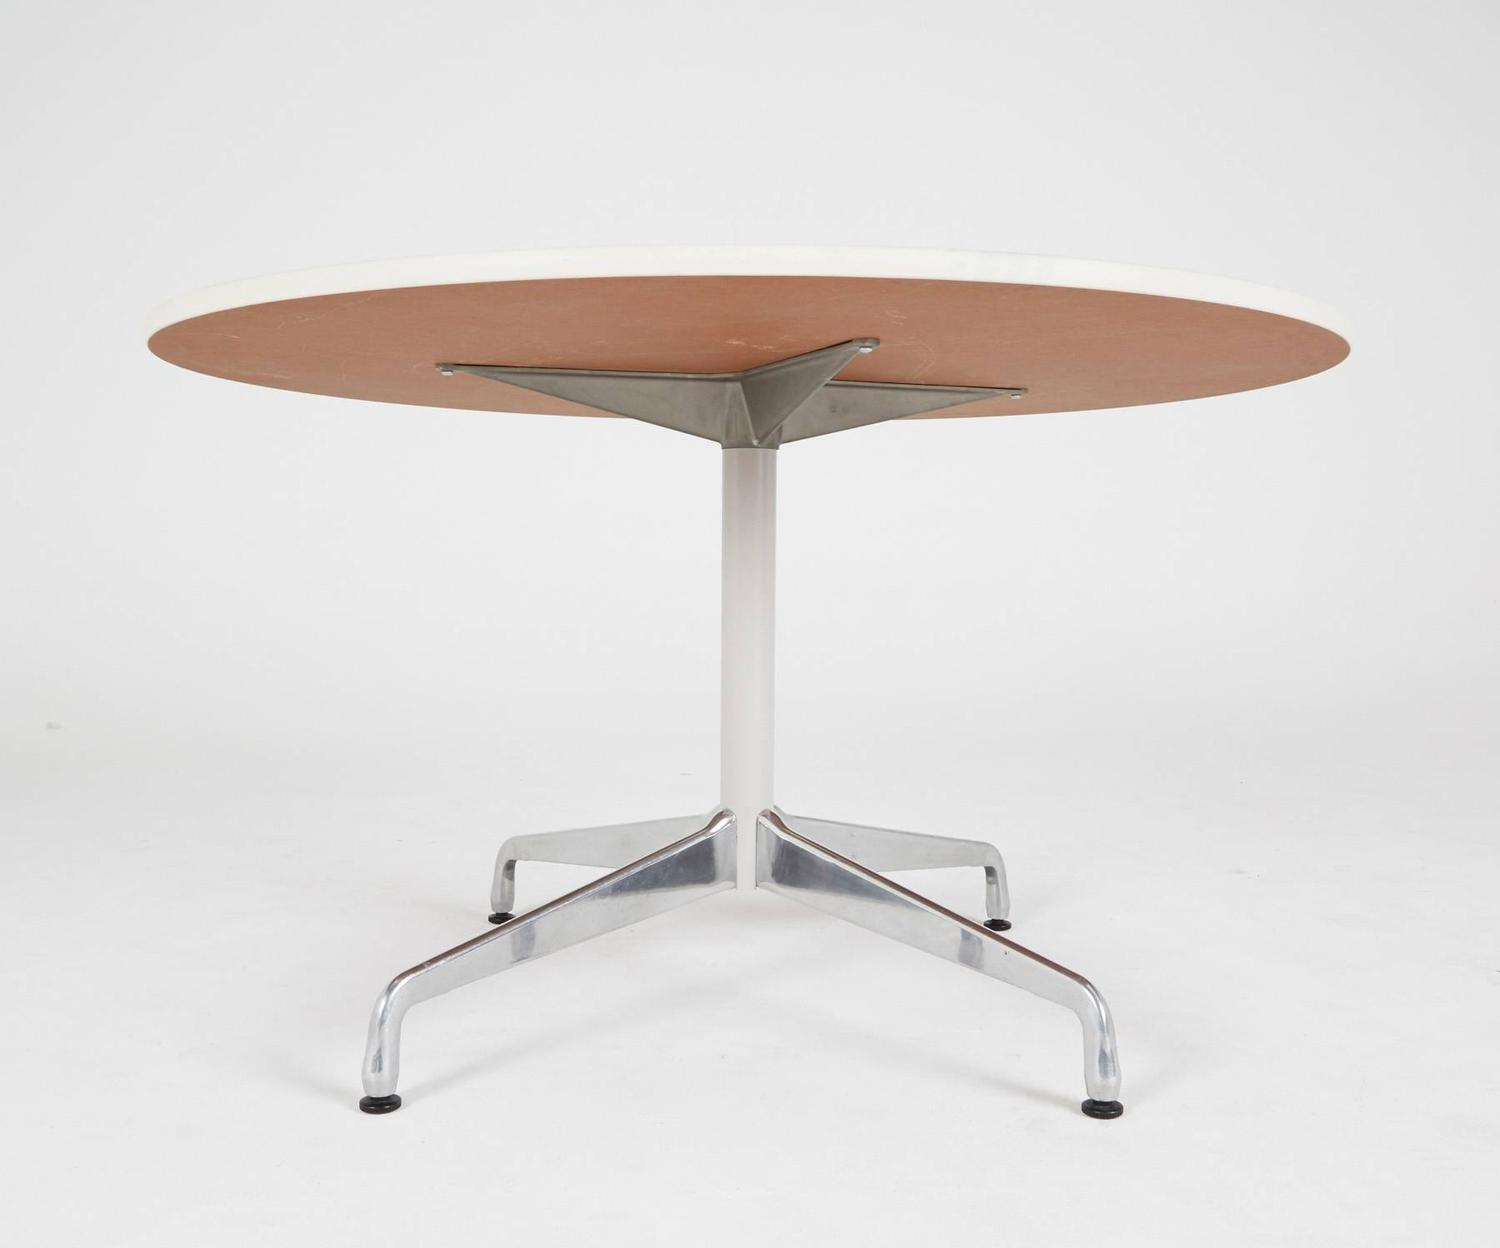 eames for herman miller round dining or breakfast table on sale at 1stdibs. Black Bedroom Furniture Sets. Home Design Ideas